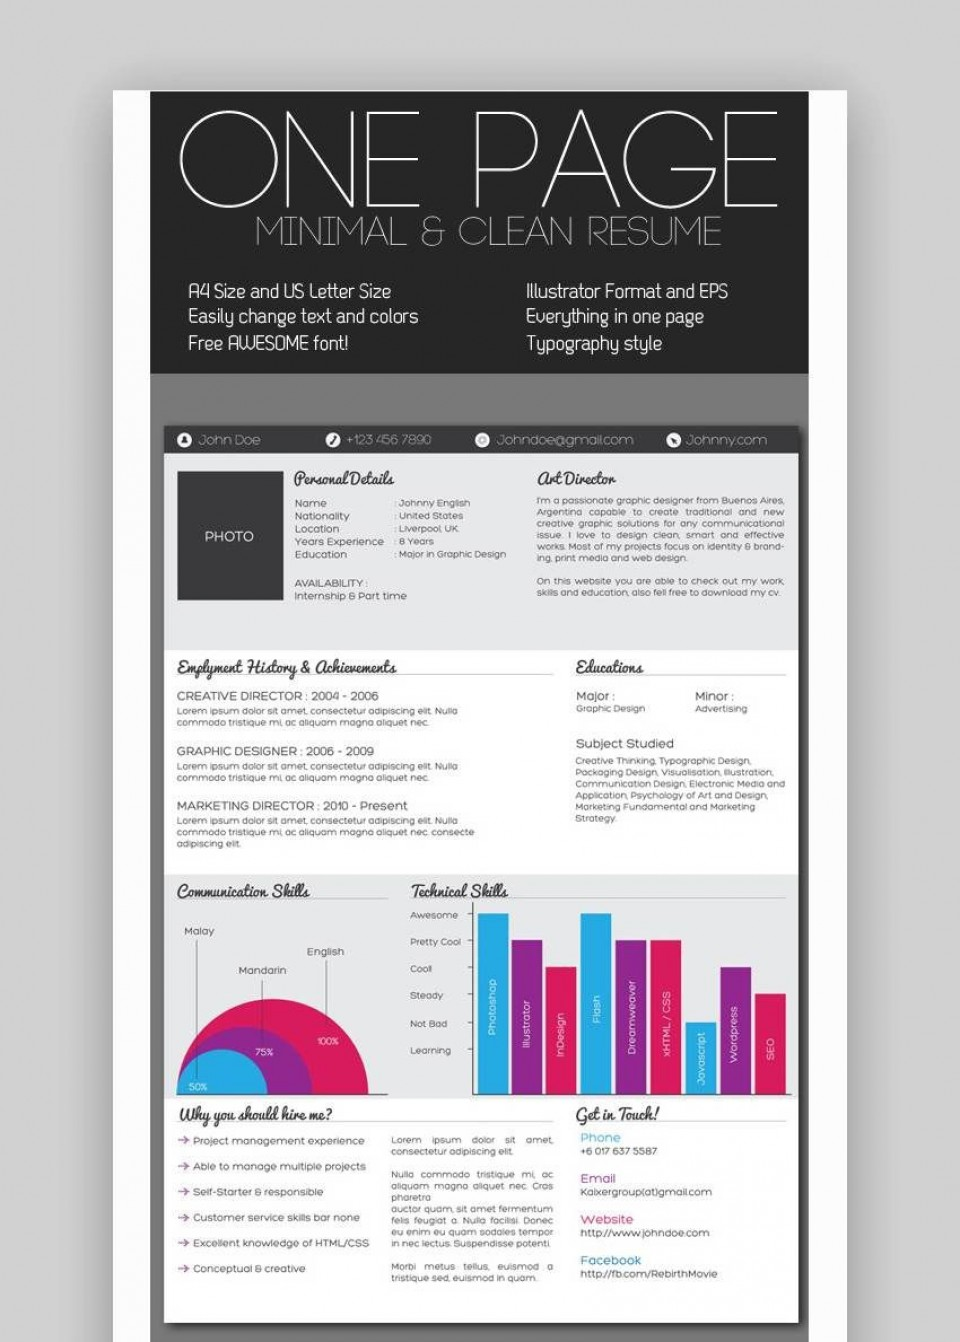 004 Astounding One Page Resume Template Sample  Word Free For Fresher Ppt Download Html960